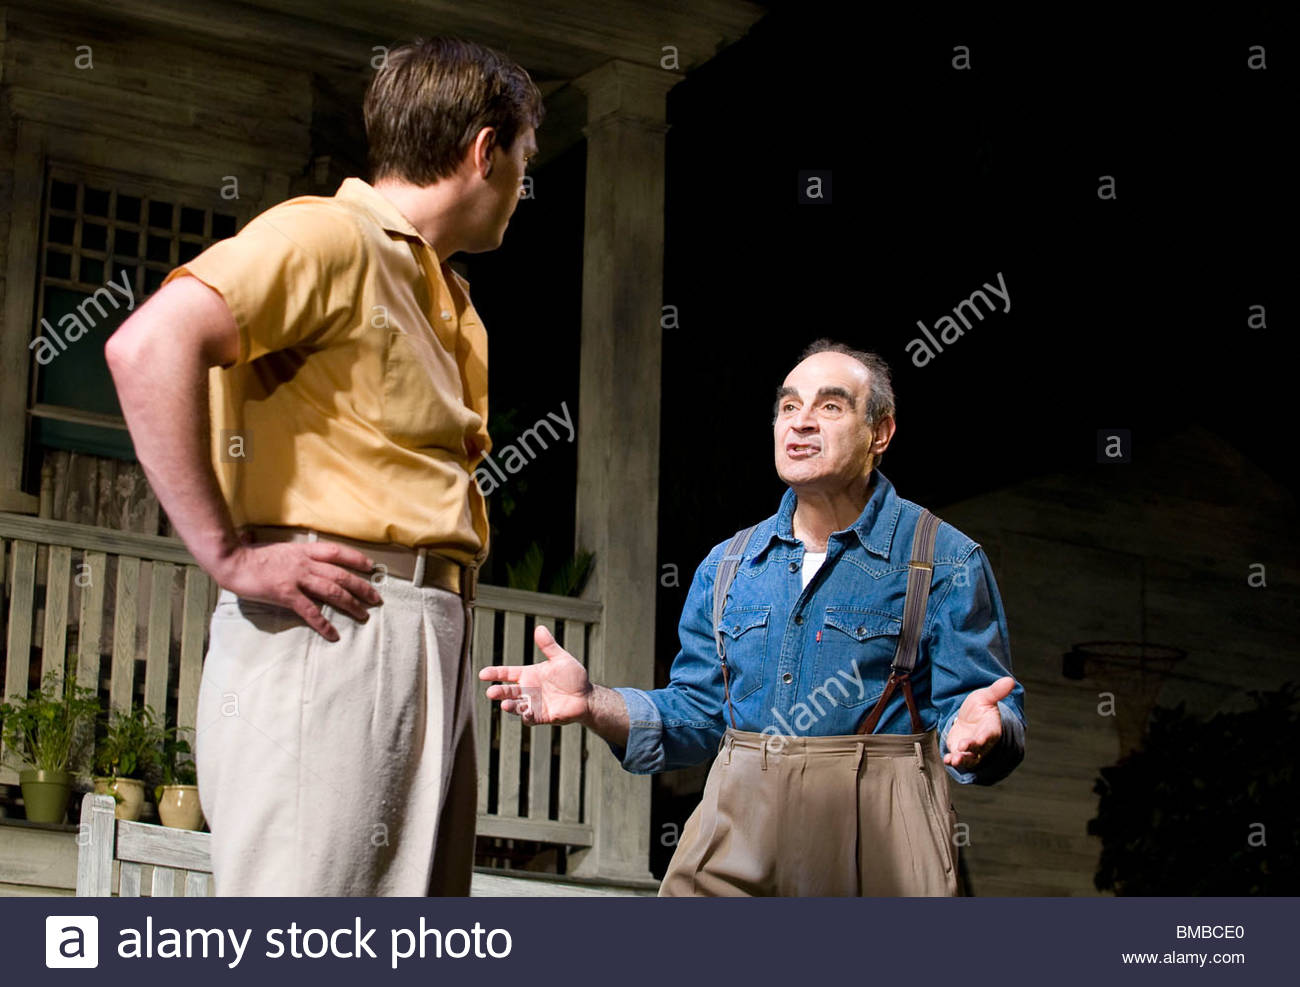 All My Sons by Arthur Miller,directed by Howard Davies.With Stephen Campbell Moore as Chris Keller,David Suchet - Stock Image